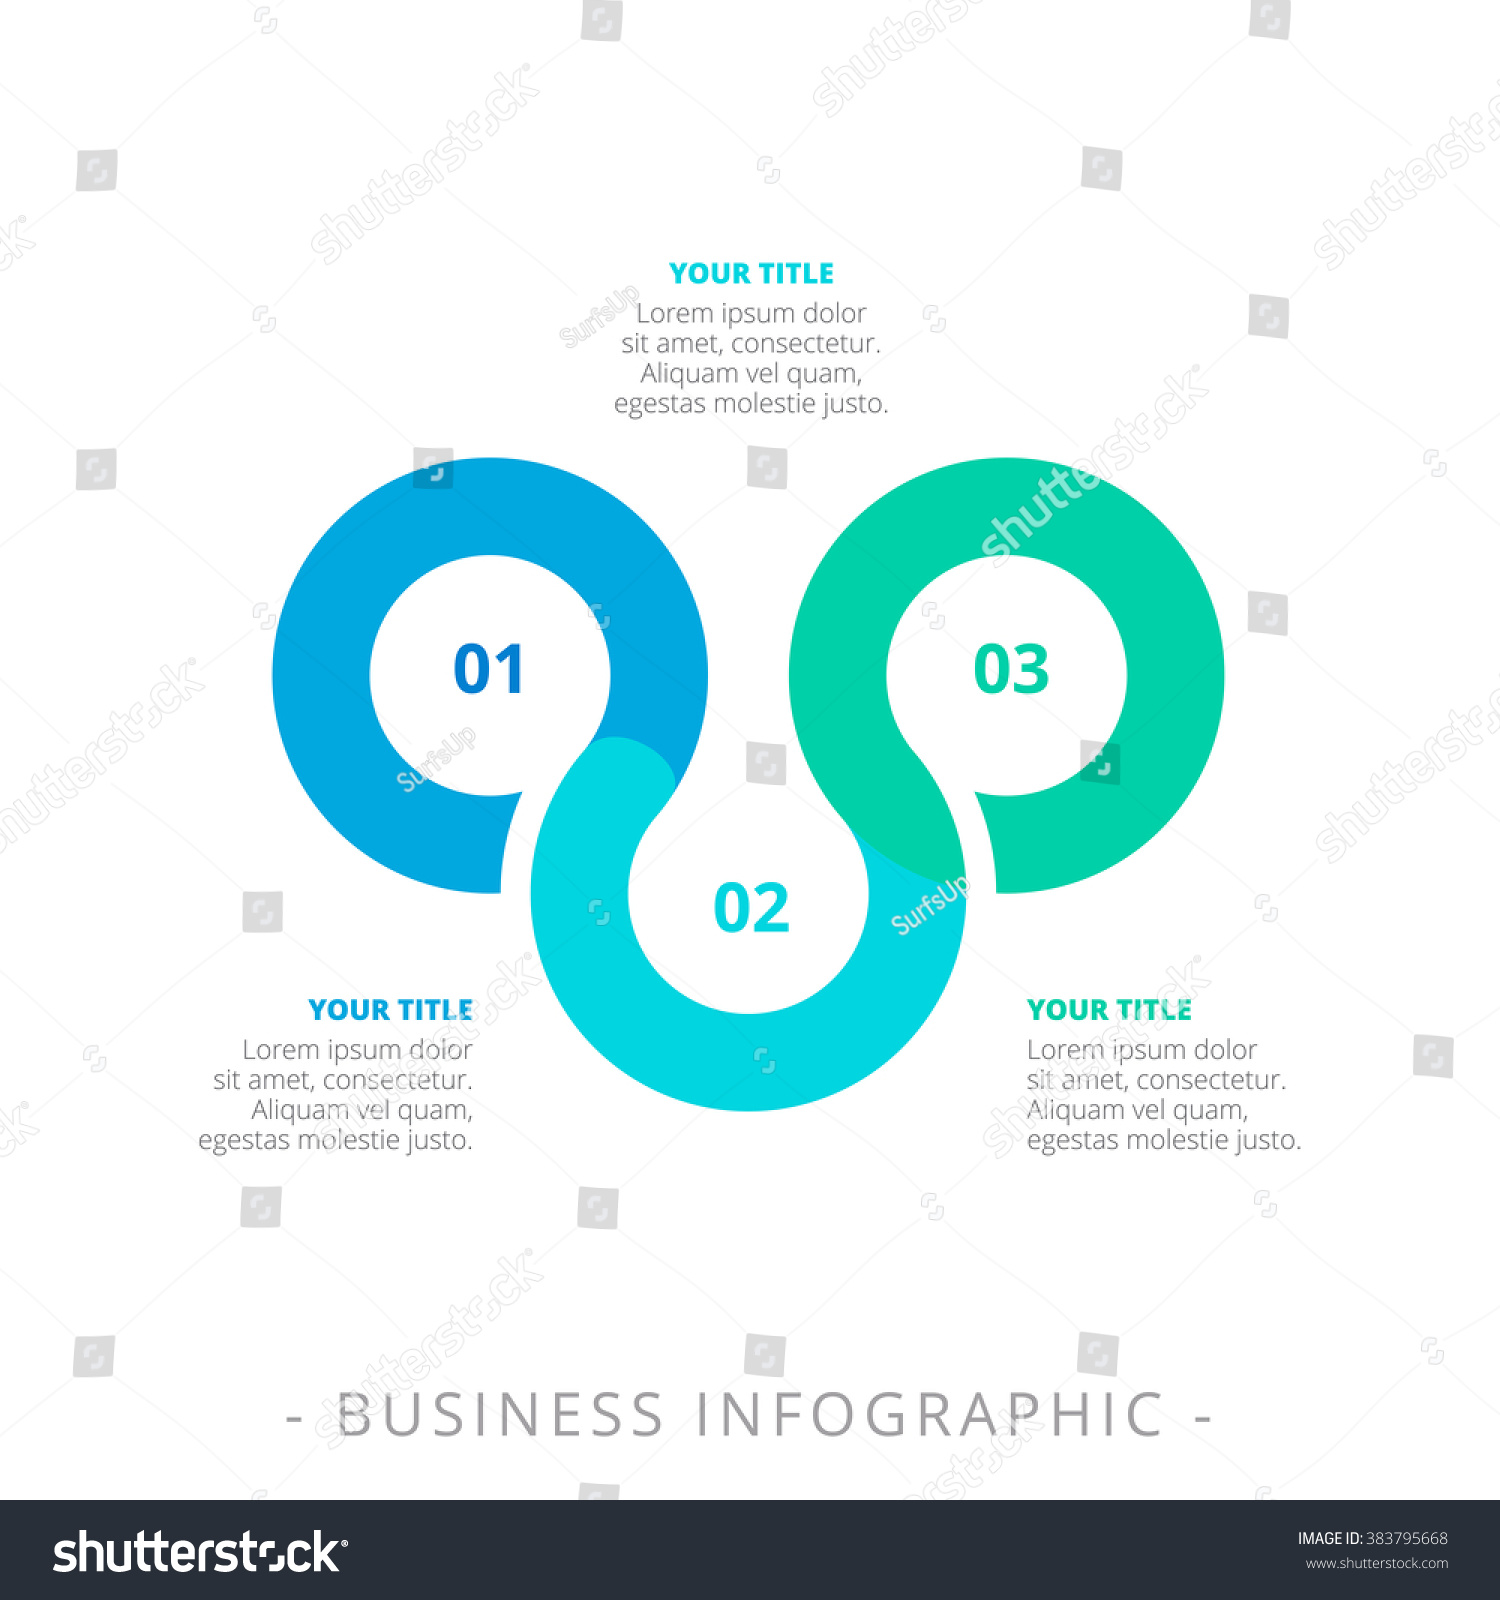 Lovely 1 Inch Button Template Small 1 Page Resume Format Download Round 1 Page Resumes Examples 10 Tips For Writing A Resume Young 100 Day Plan Template Brown2 Page Brochure Template Three Step Process Chart Template Stock Vector 383795668 ..